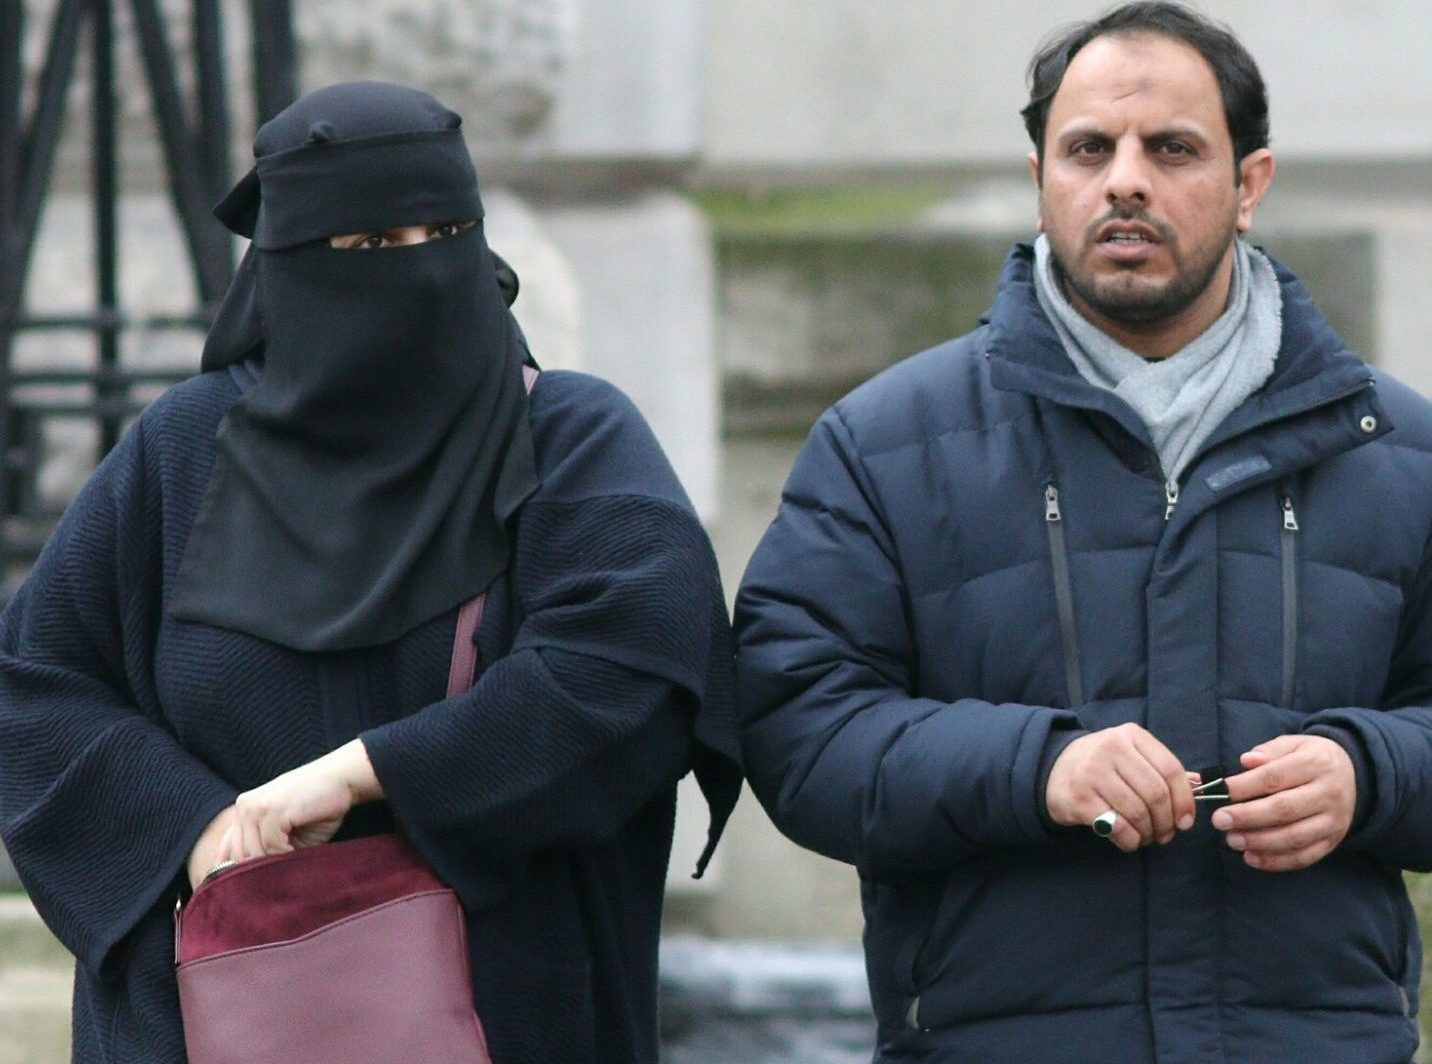 Saudi couple 'poisoned child with insulin'